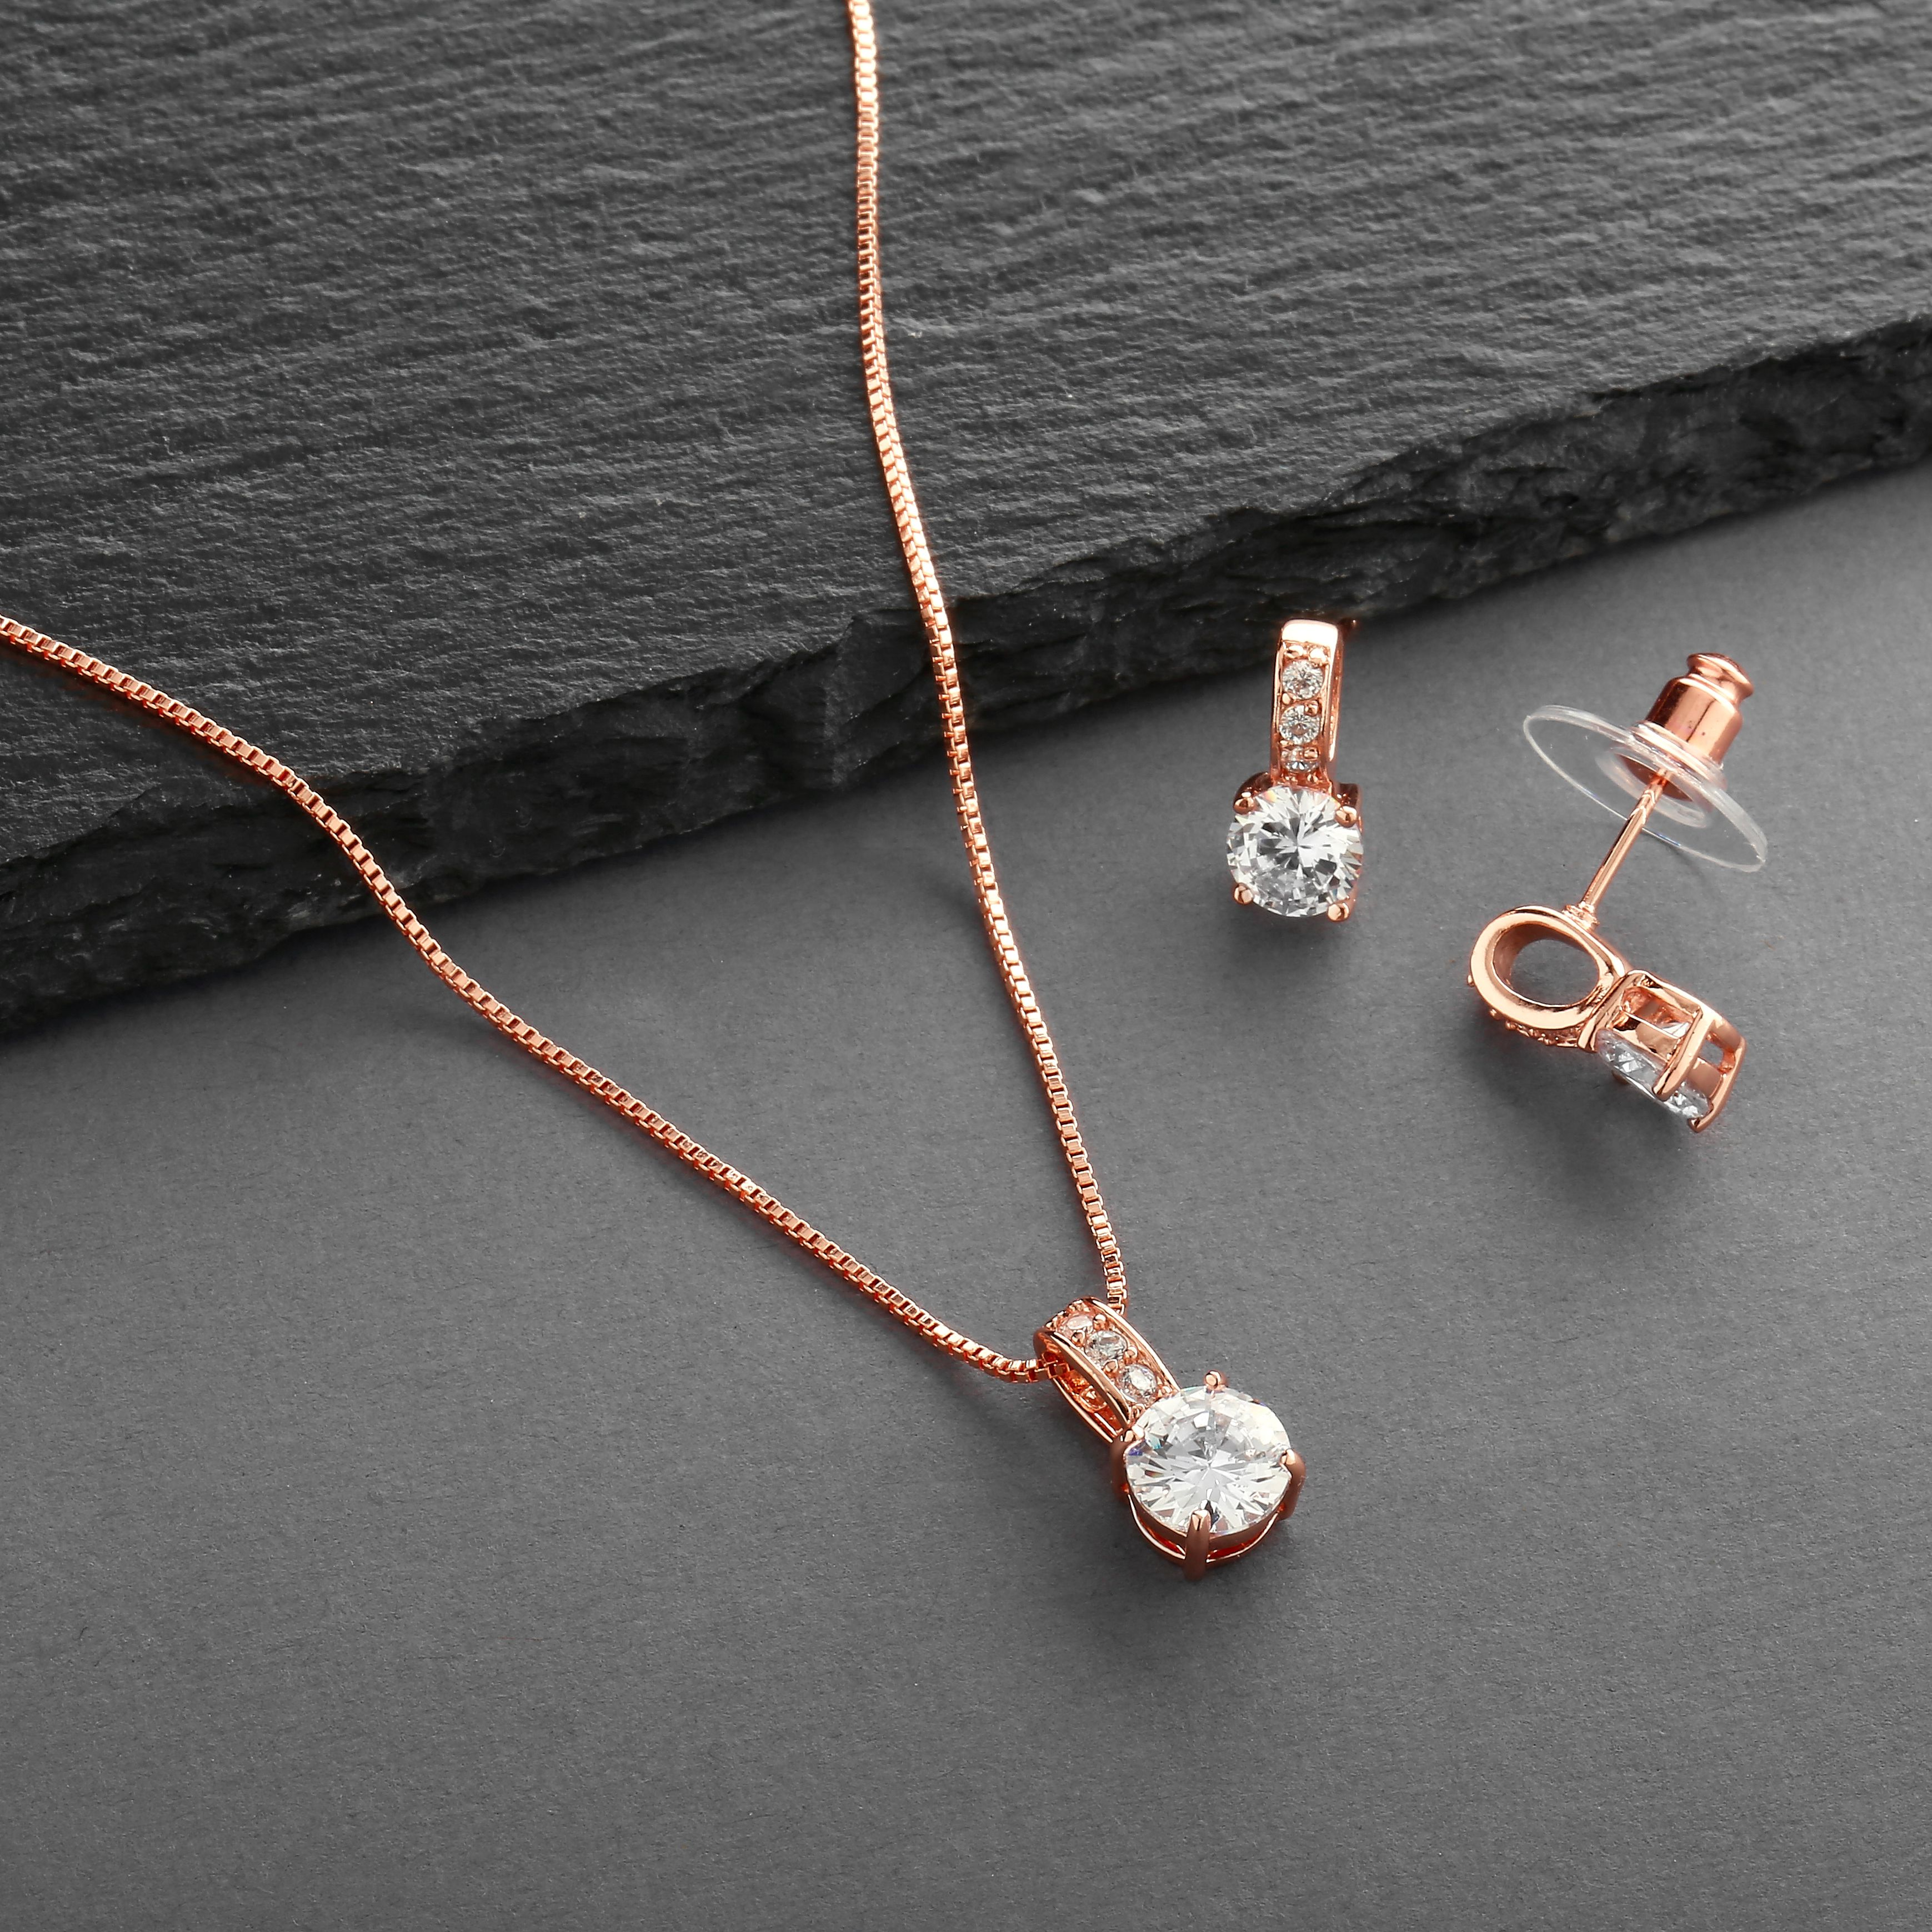 b682f1b827ed Mariell Ultra Dainty 10.5mm Cubic Zirconia Round Halo Necklace and Stud  Earrings Set Plated in 14K Gold in 2019